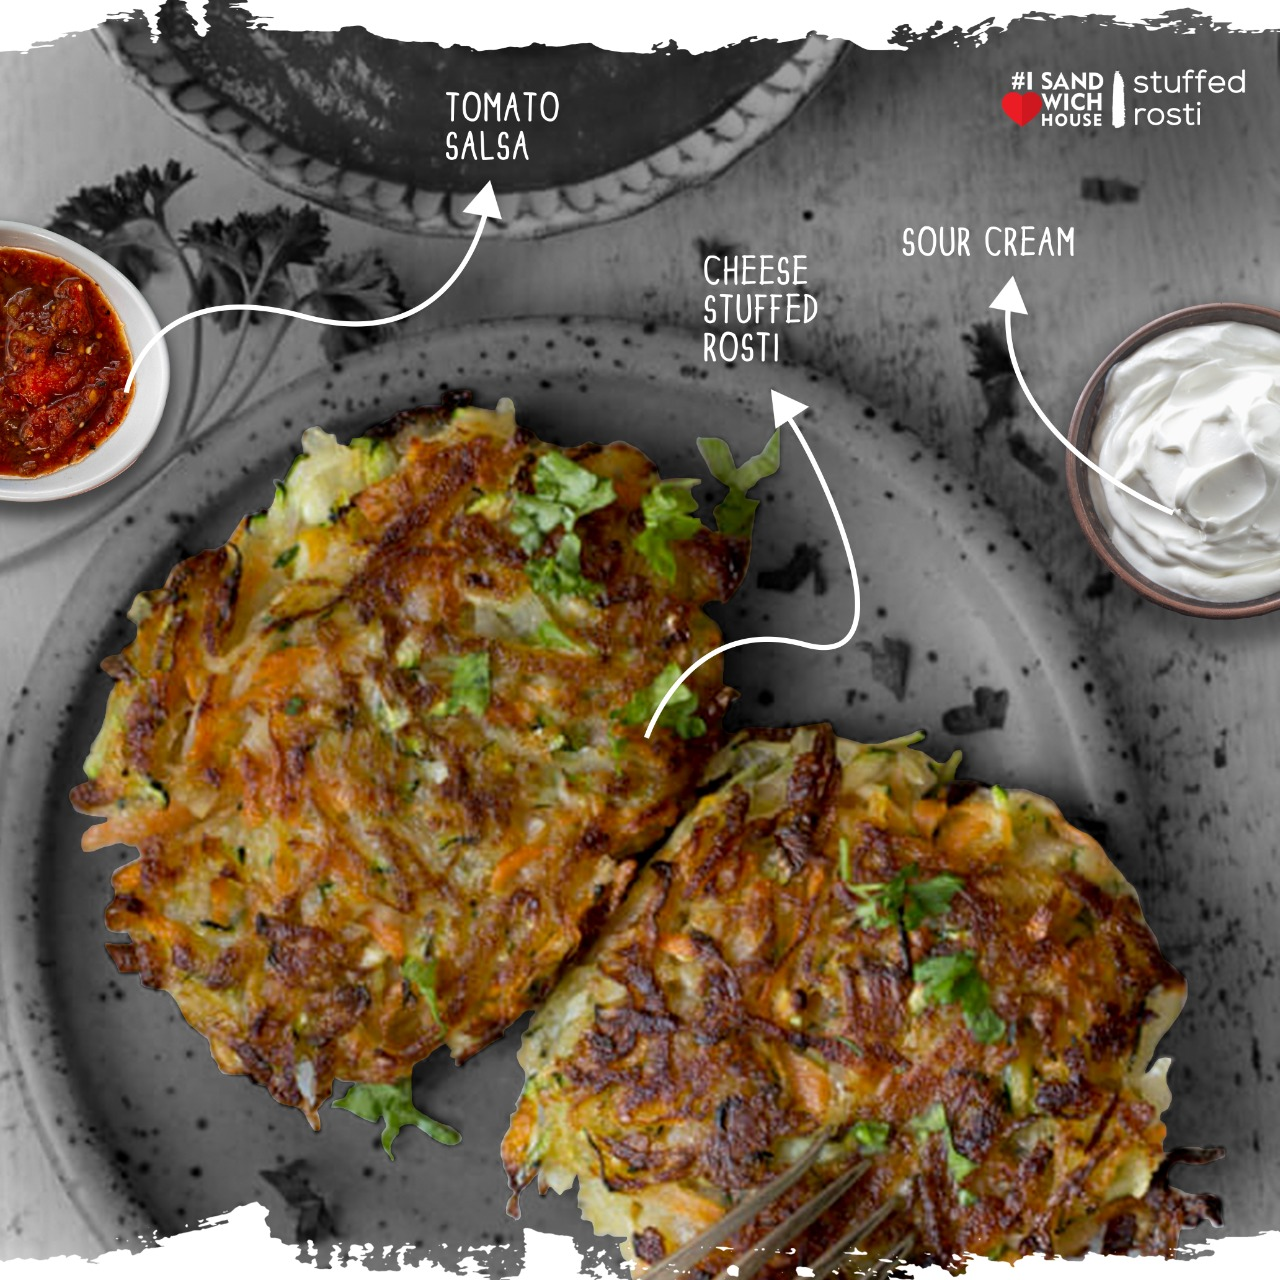 Stuffed Rosti With Sour Cream And Salsa